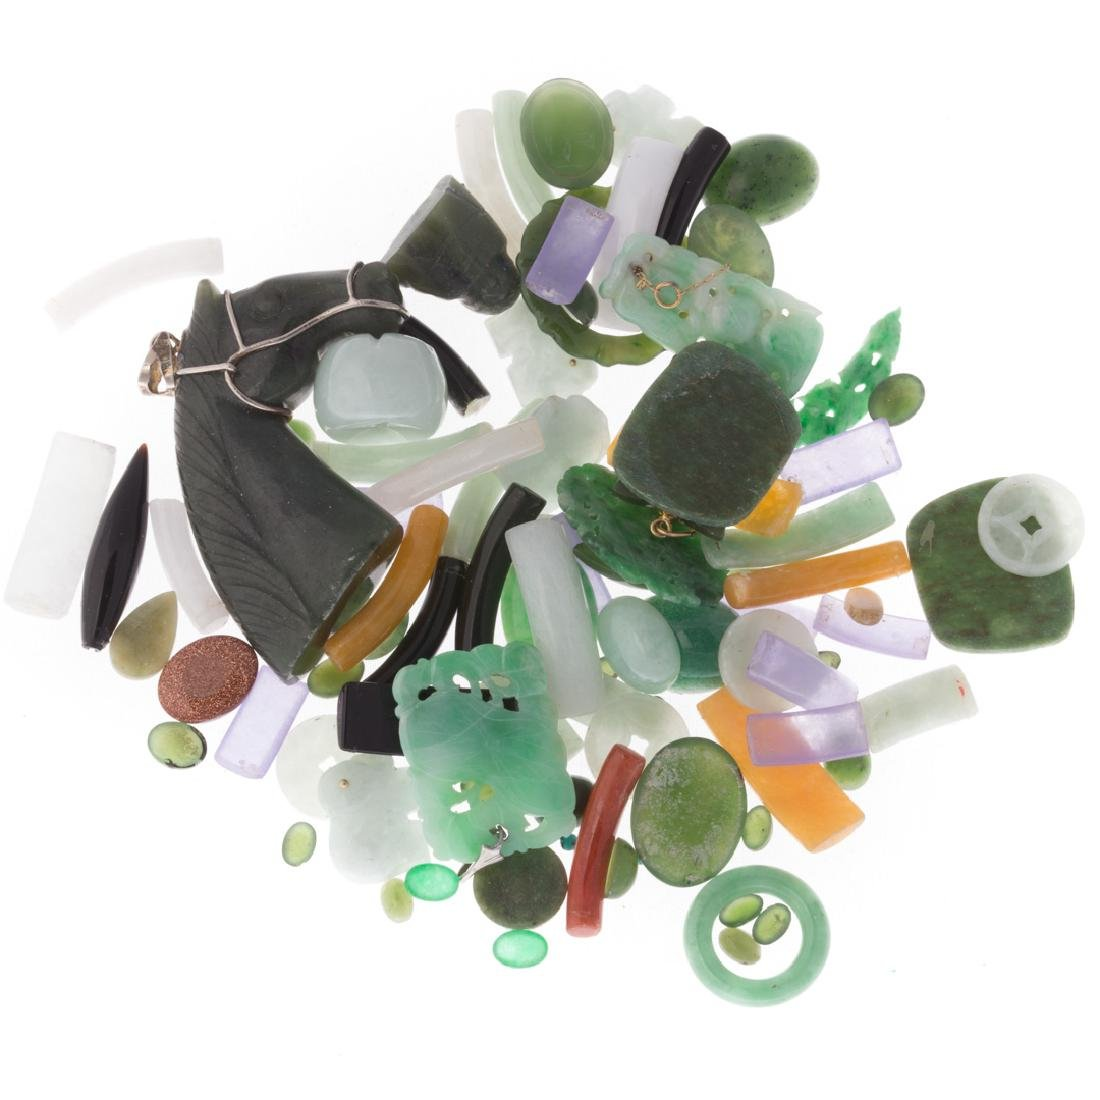 A Bag of Loose Jade and Nephrite - 3